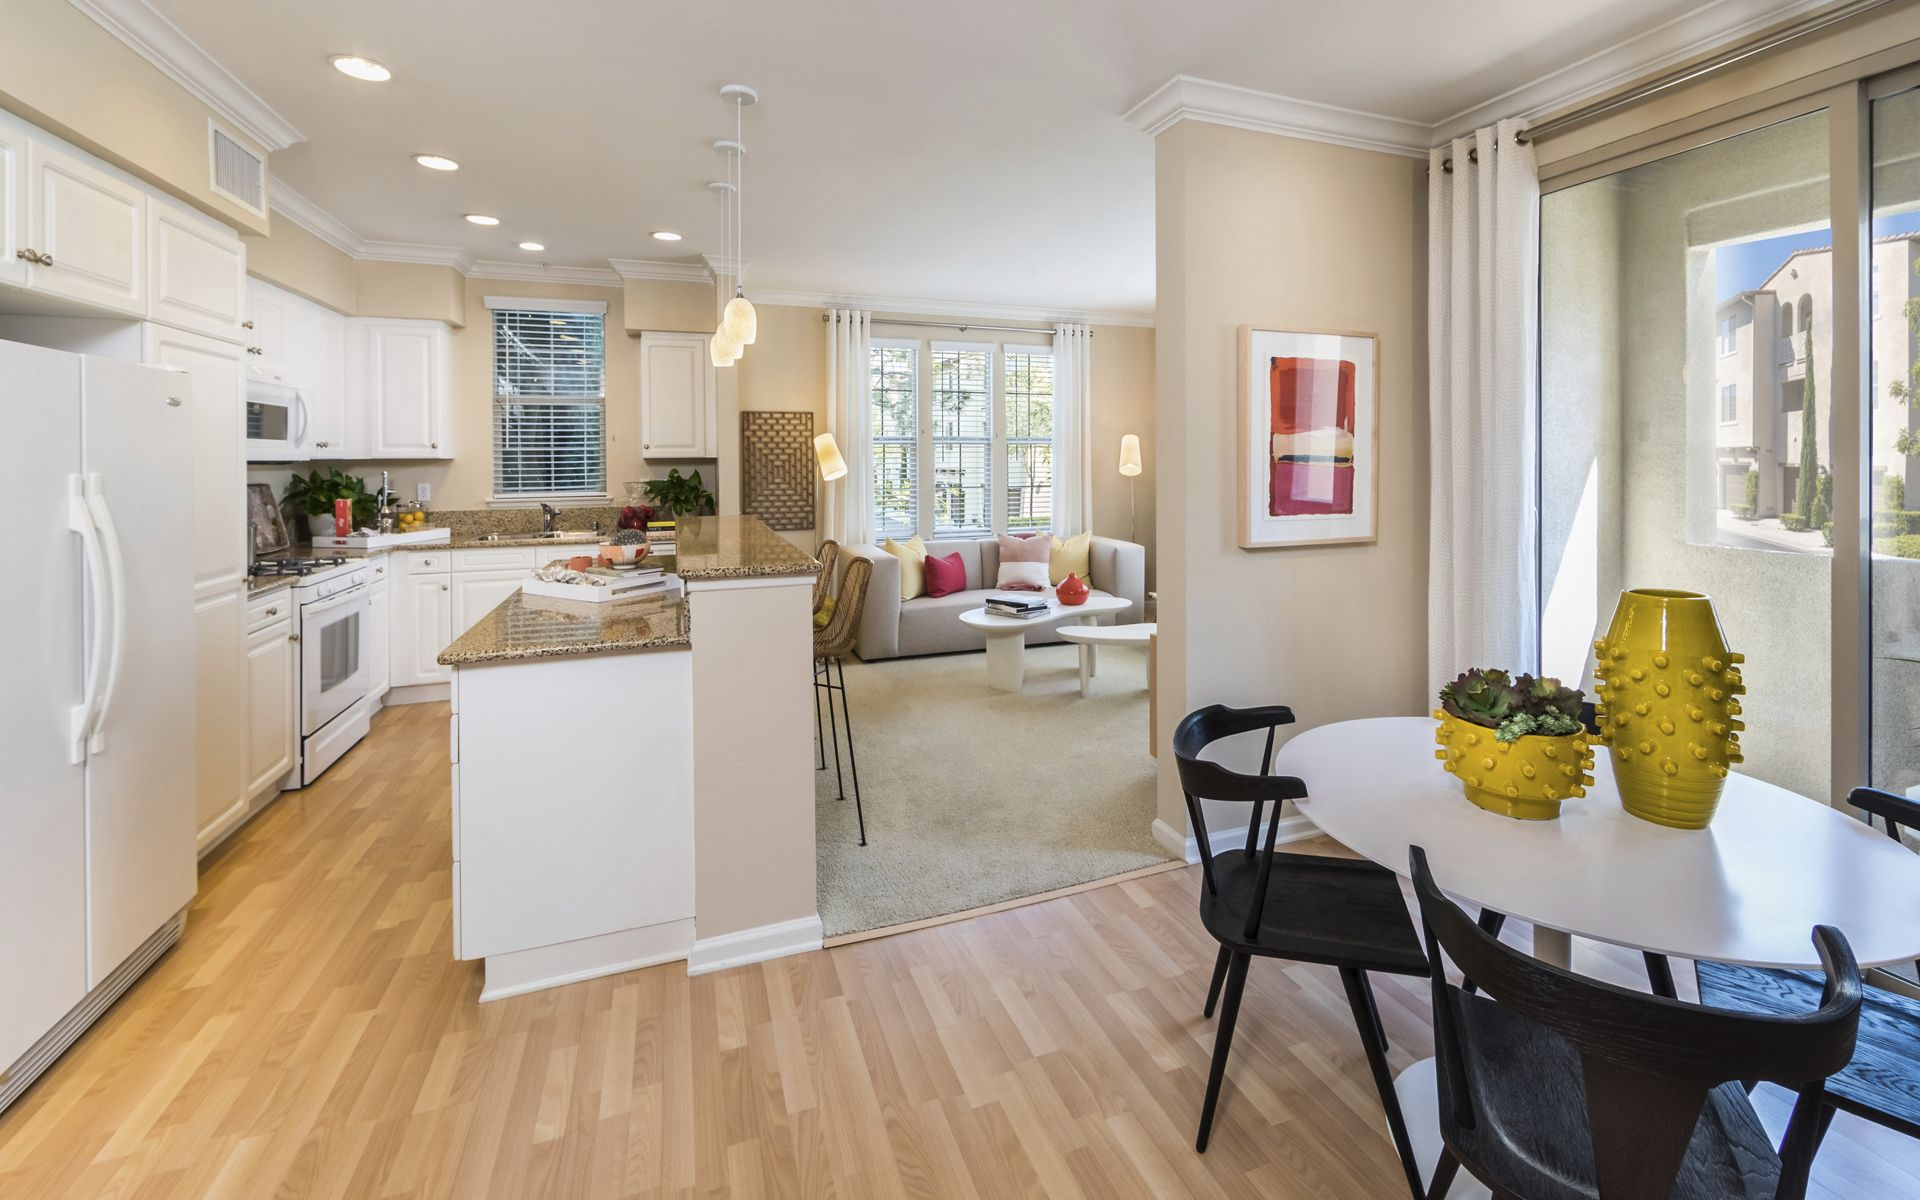 Interior view of dining room and kitchen at Woodbury Lane Apartment Homes in Irvine, CA.